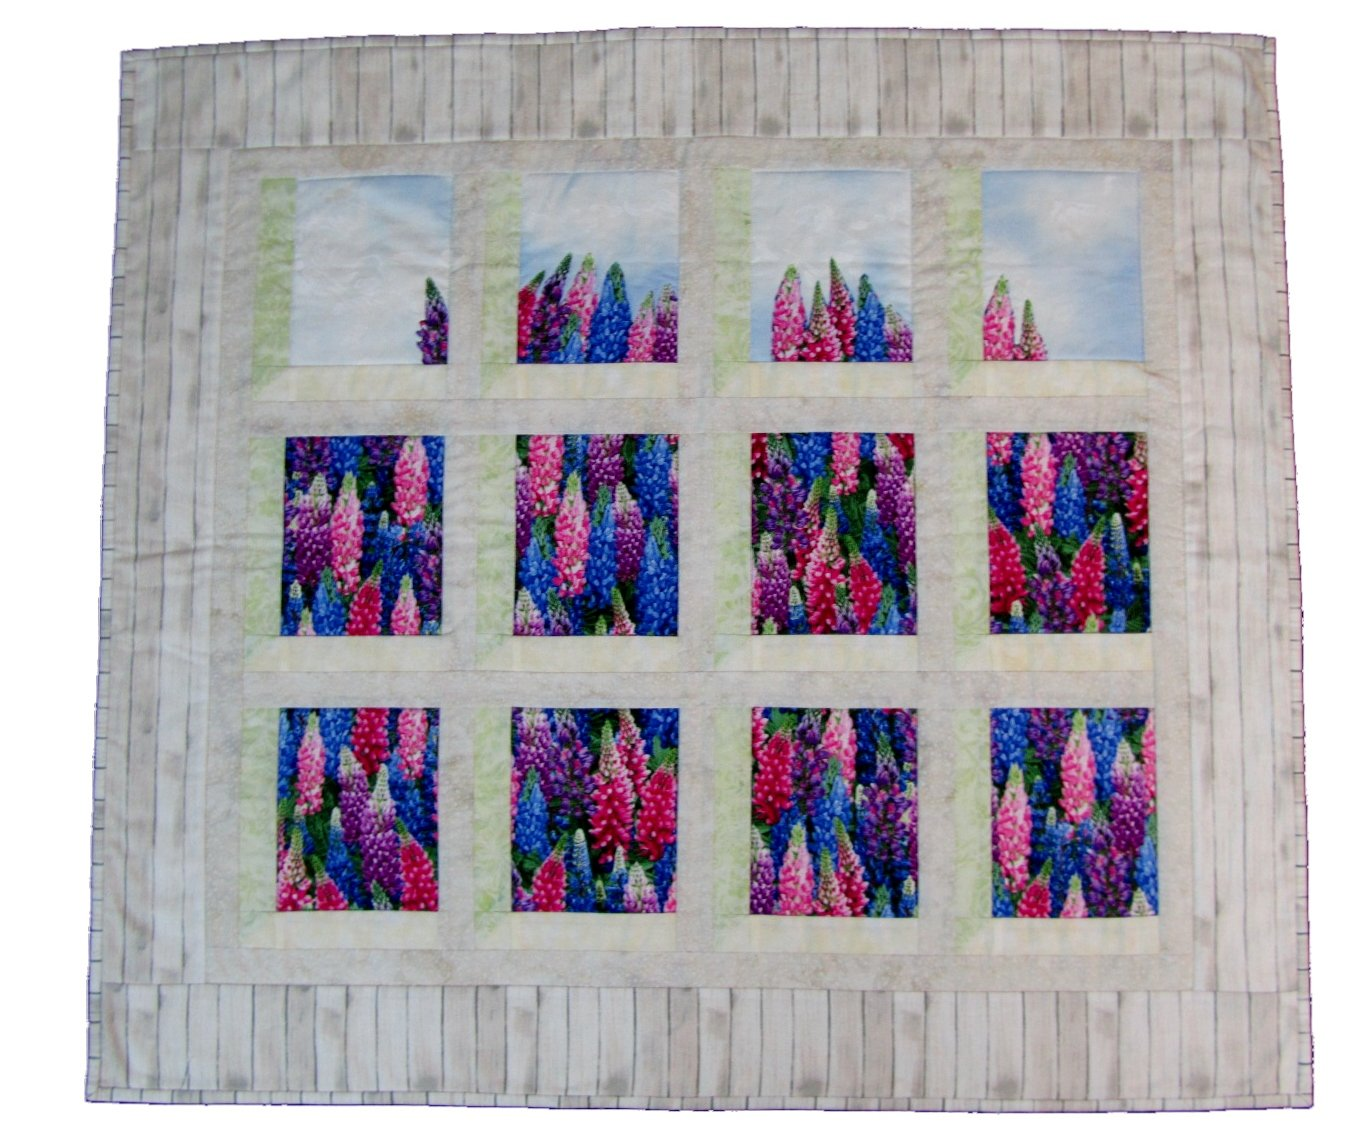 Cottage View Wall Hanging Kit - a Fabric Garden Exclusive